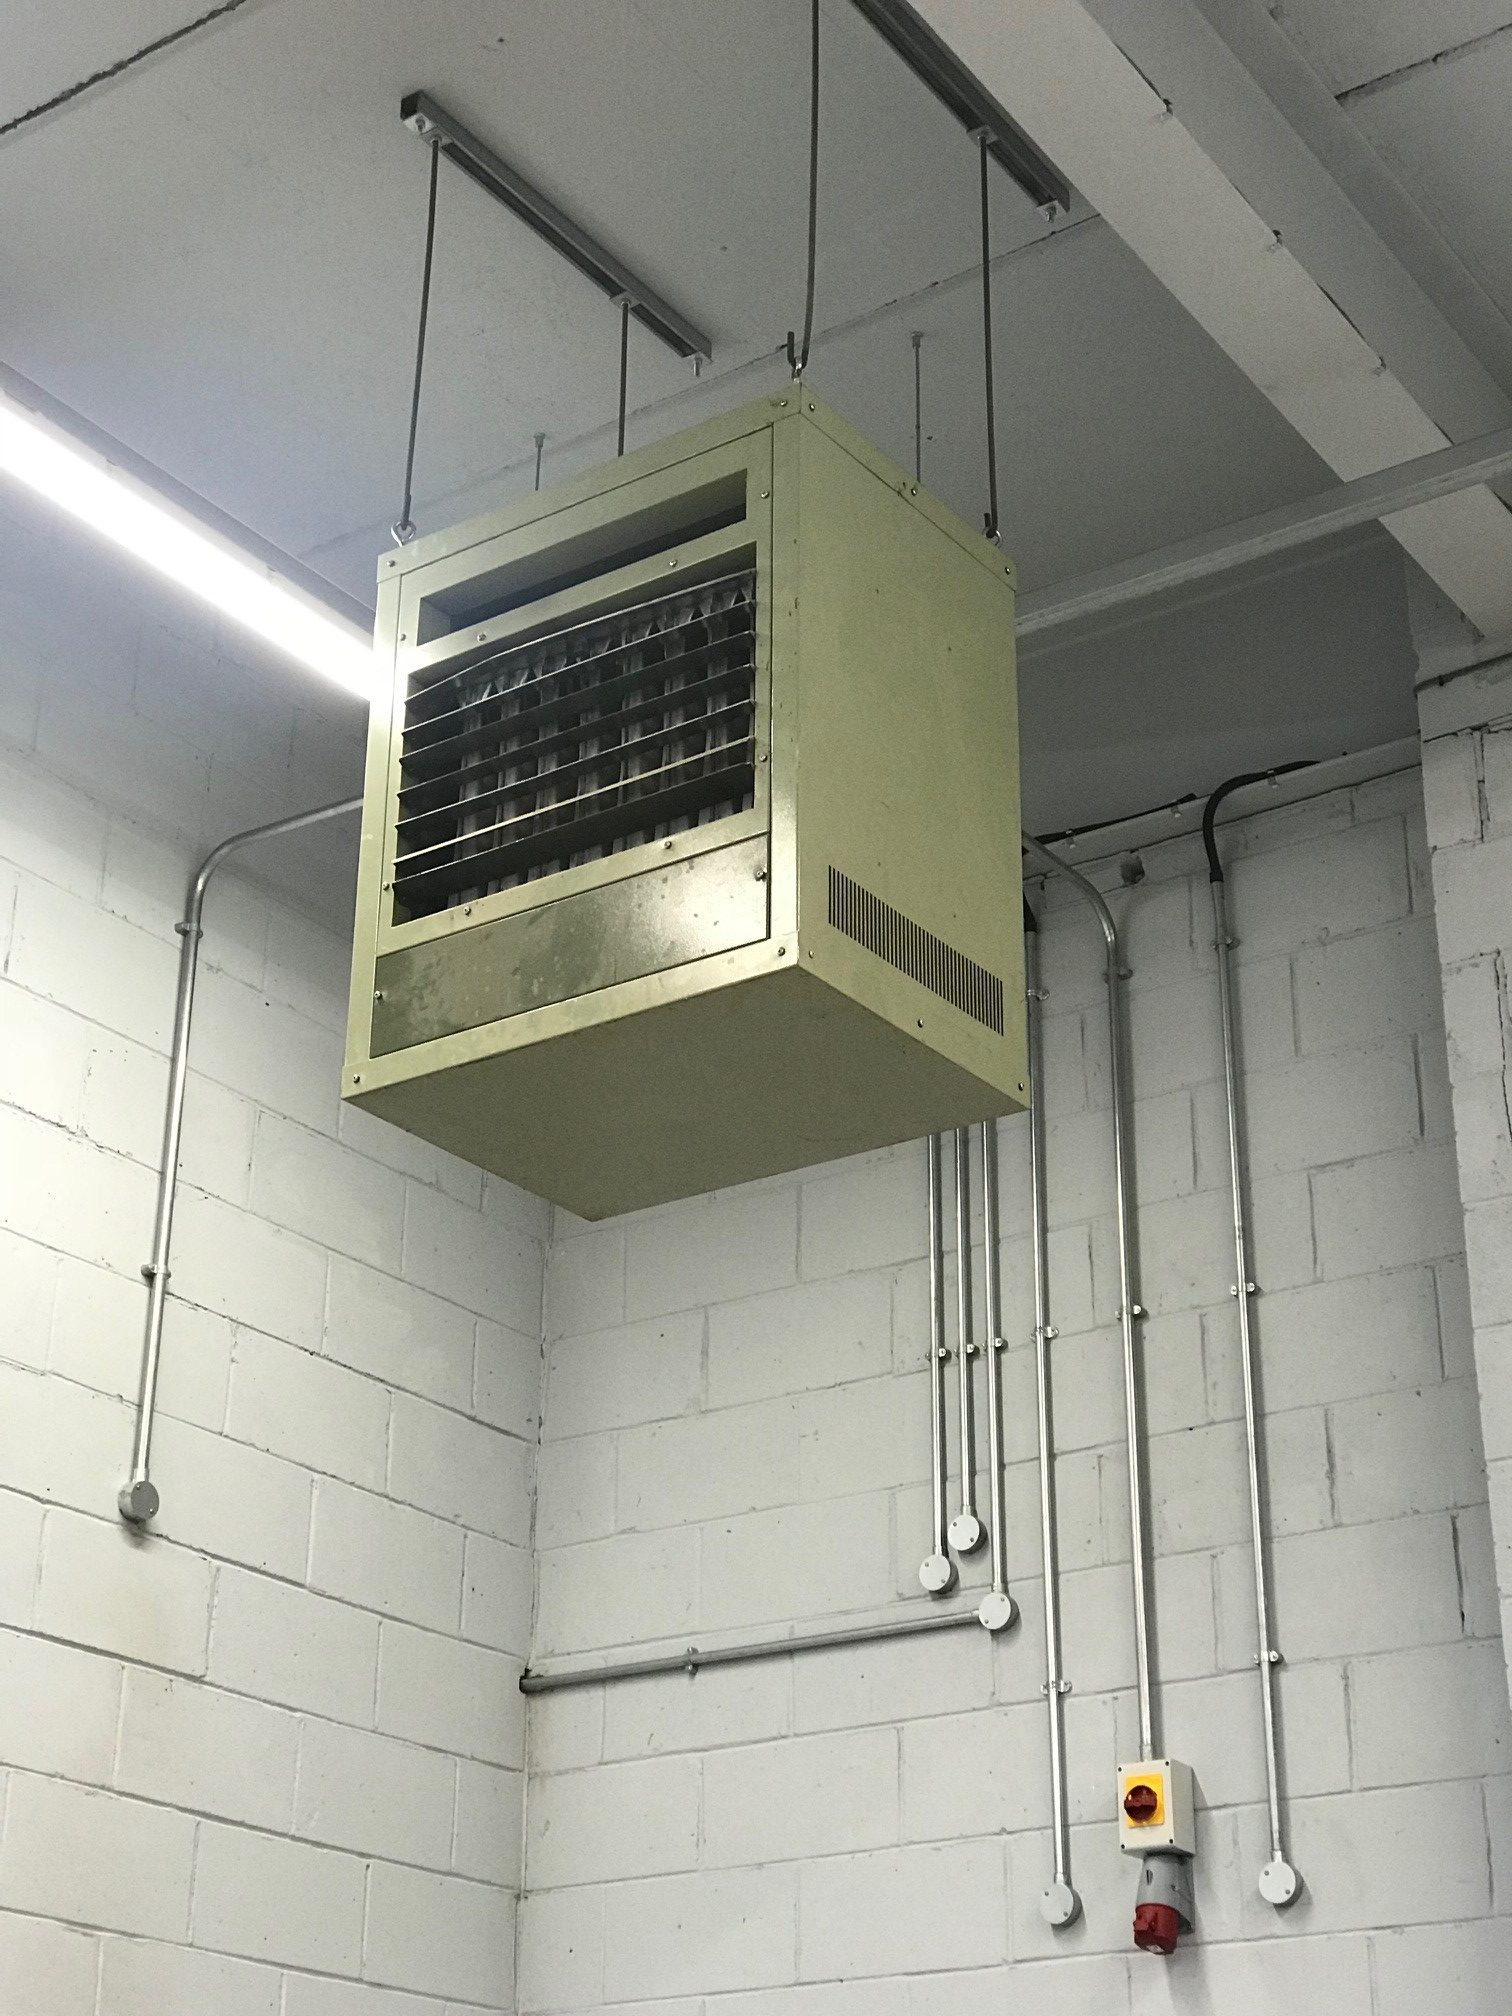 A vent hanging from the ceiling in the corner of an industrial building at boomtown